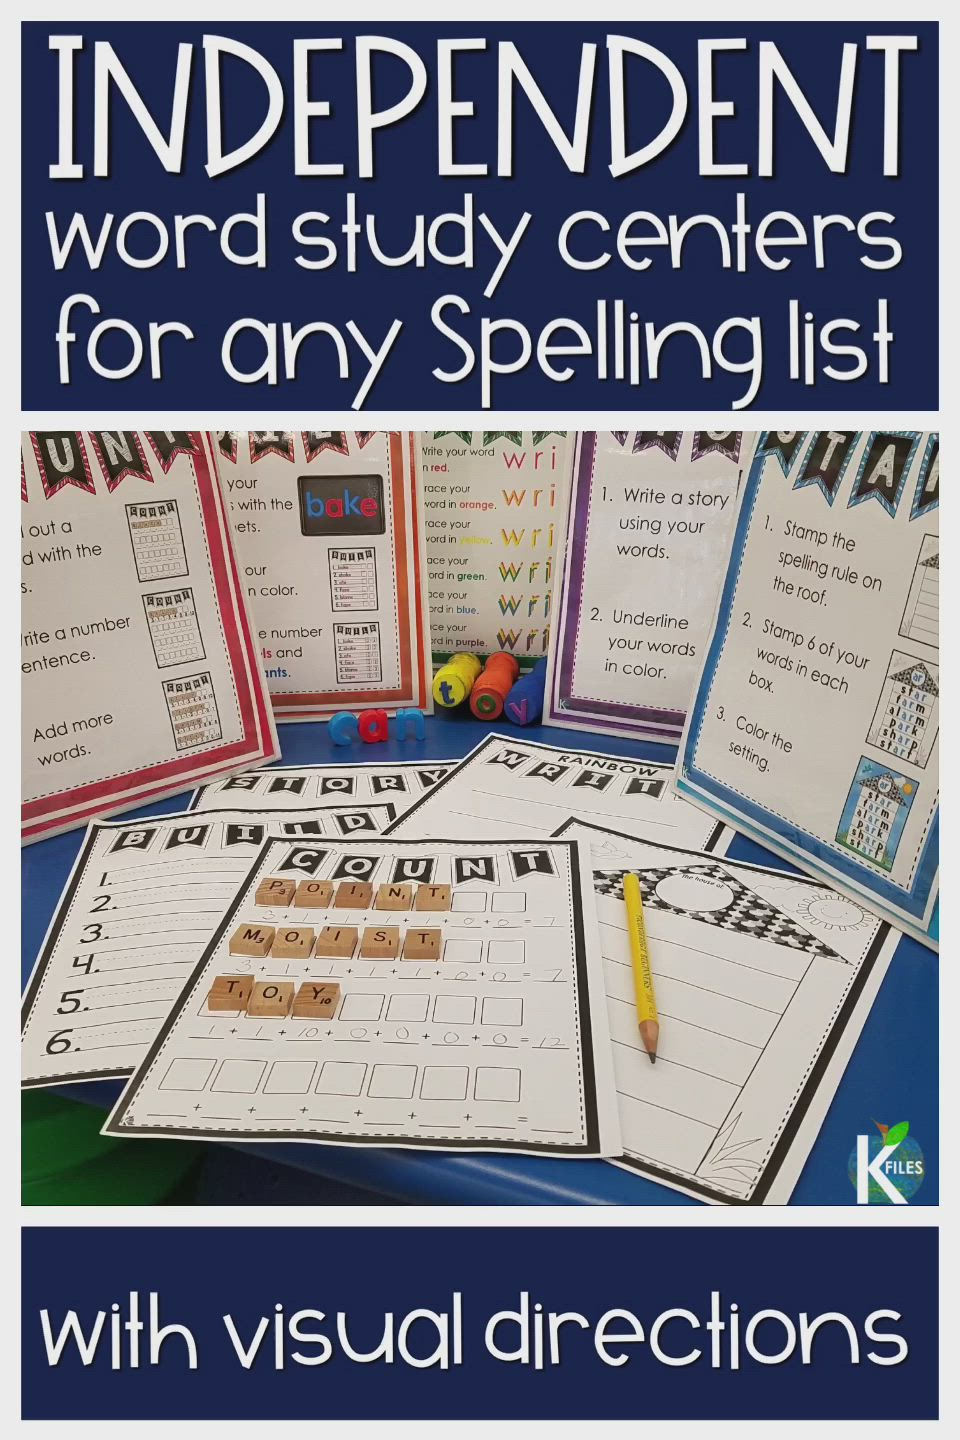 Independent Word Study Centers The K Files Video Video Word Study Centers Word Study Activities Spelling Word Activities [ 1440 x 960 Pixel ]